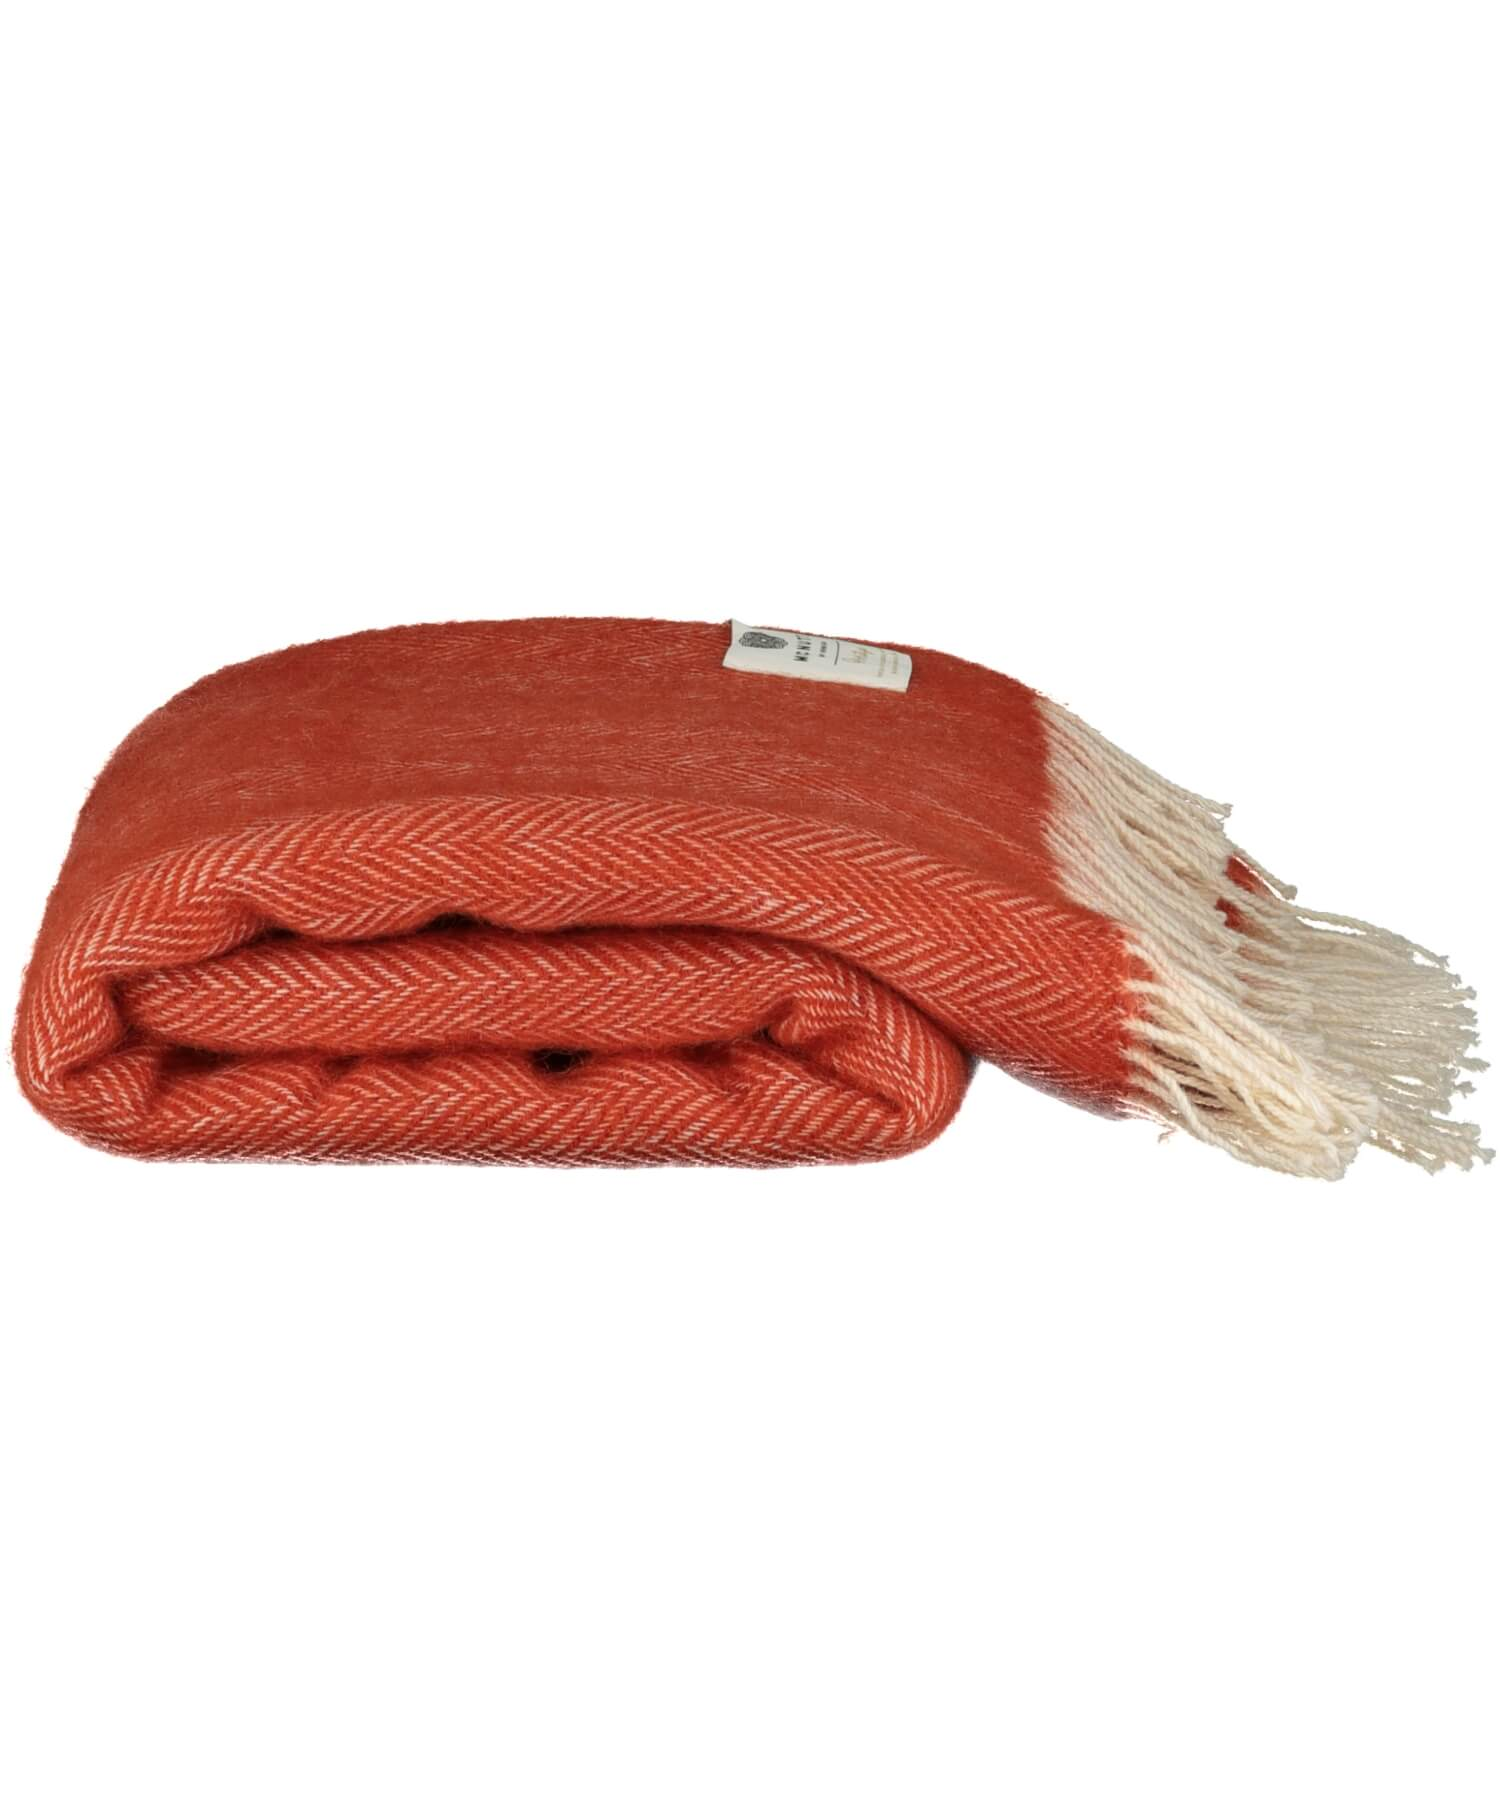 Heritage Wool Throw - Desert Sky - [McNutts] - Throws & Cushions - Irish Gifts